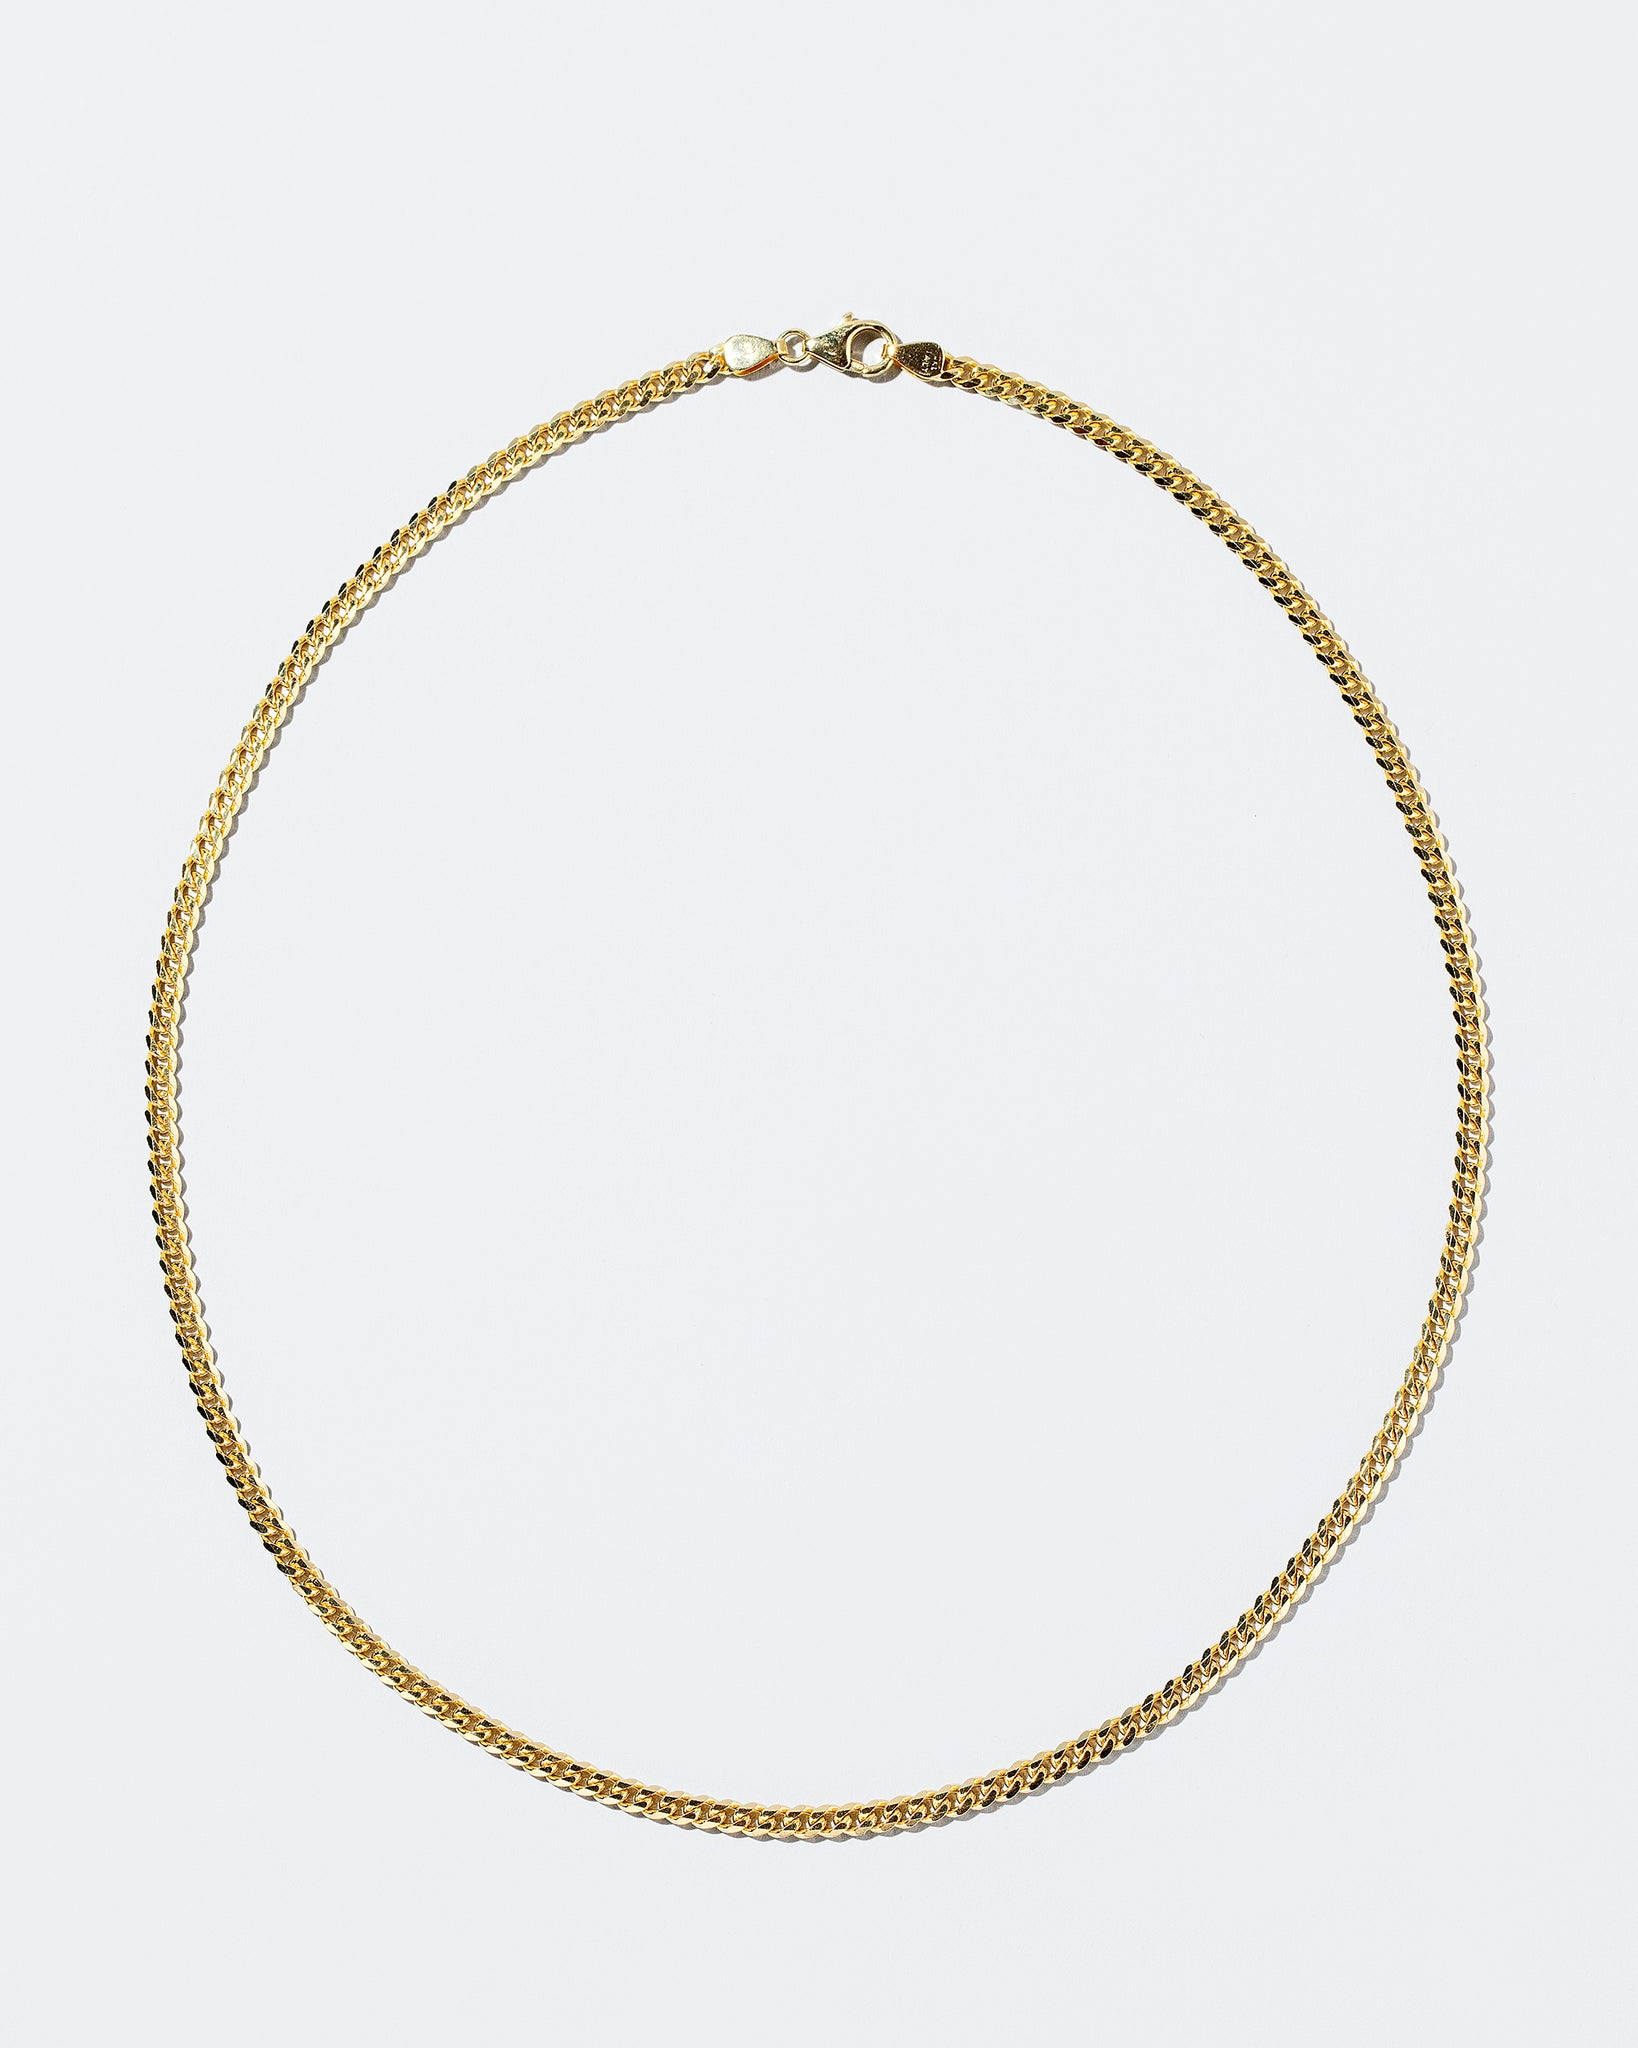 Curb Chain Necklace 3.4 mm on flat surface